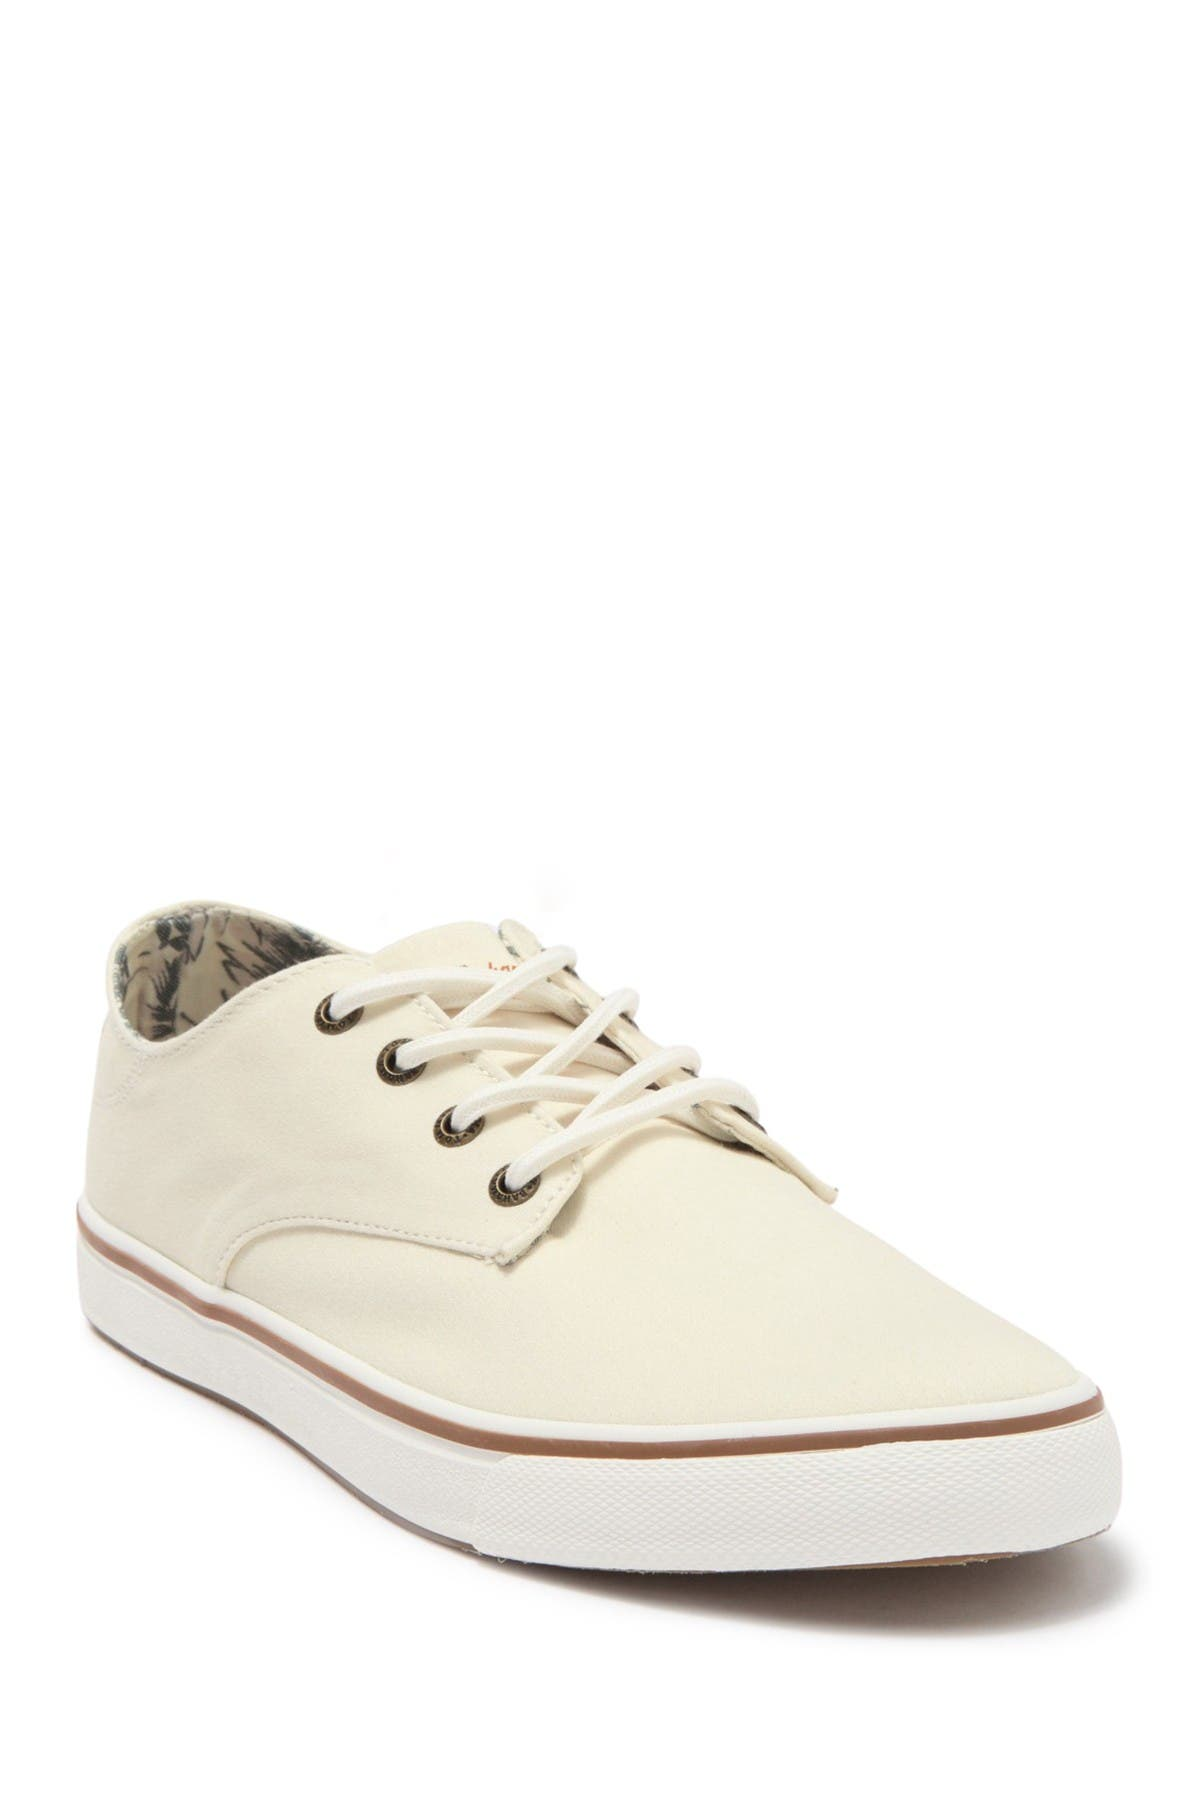 Image of Tommy Bahama Drifting Sands Sneaker